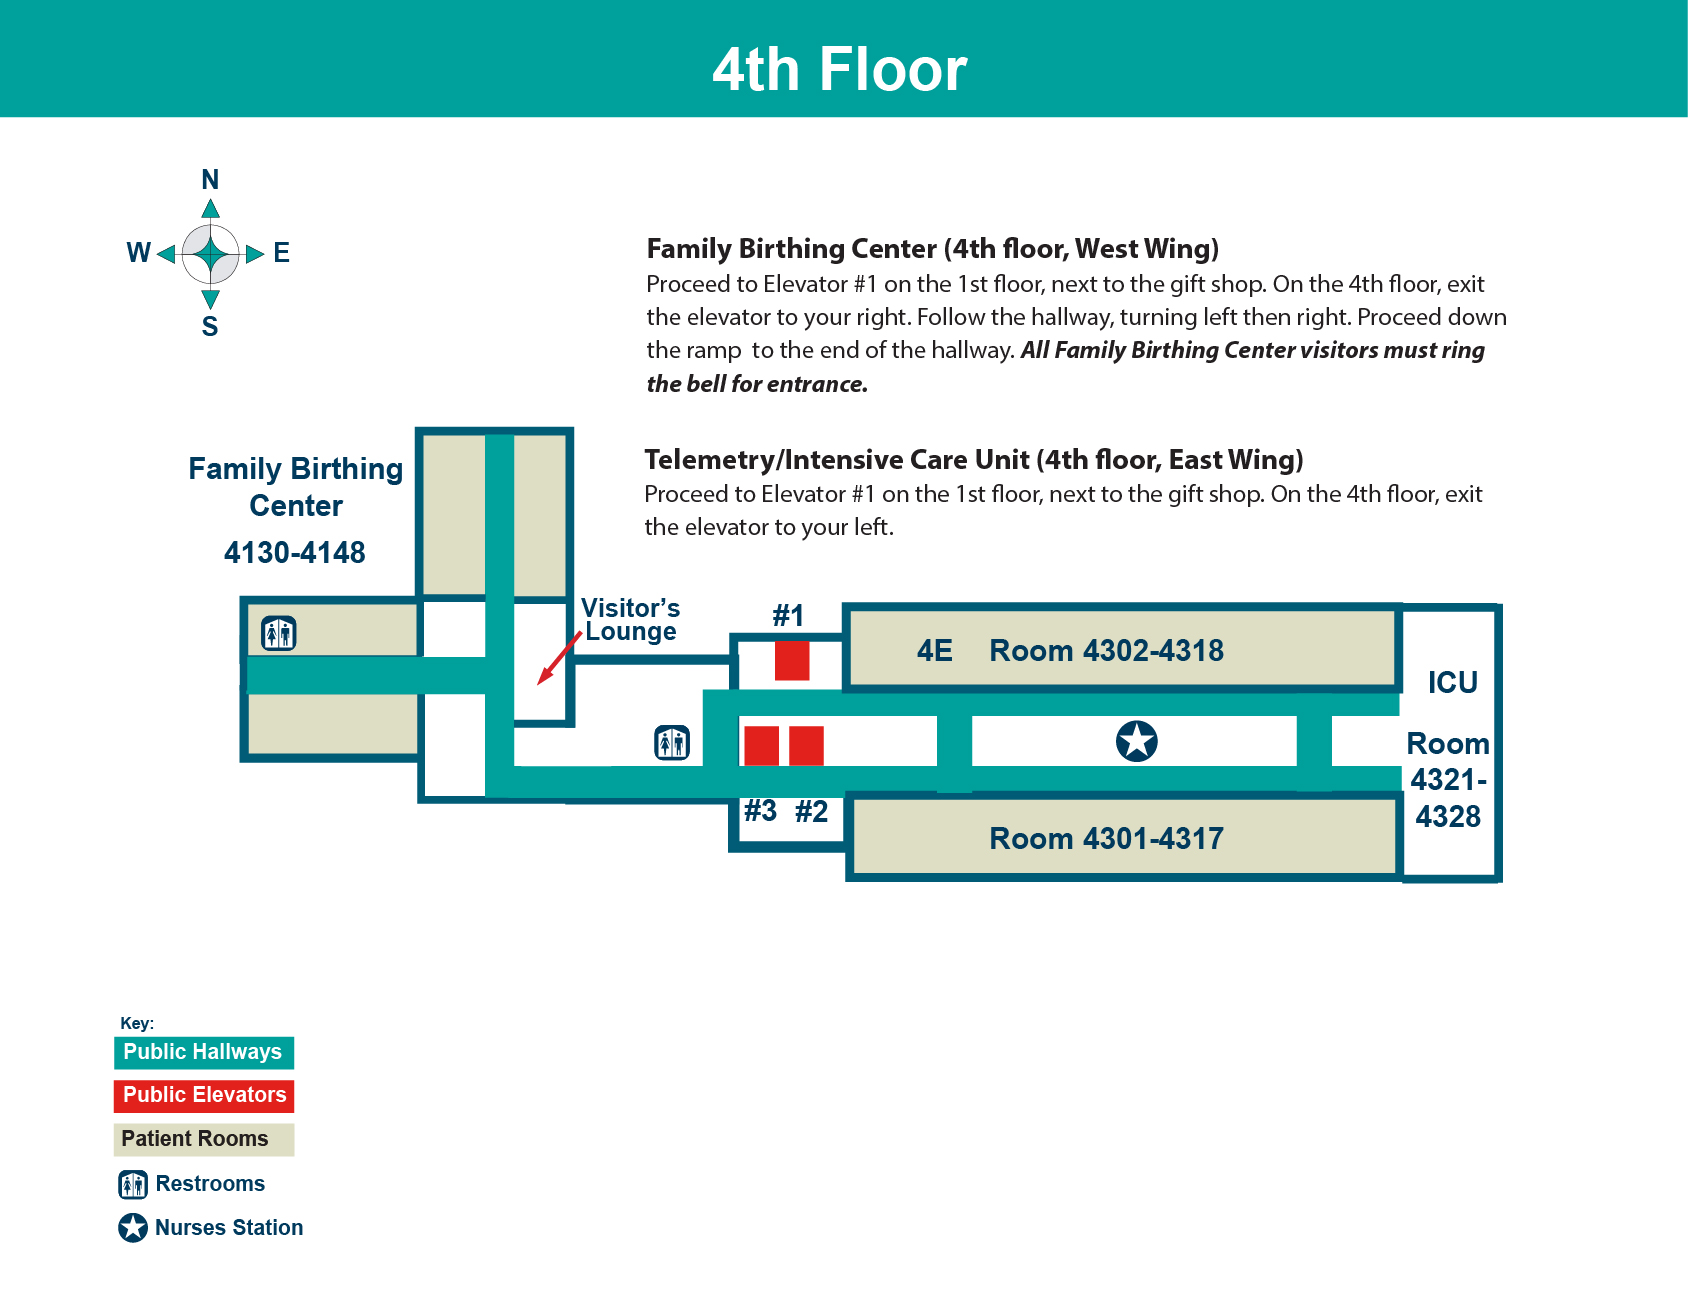 FHN Memorial Hospital fourth floor layout